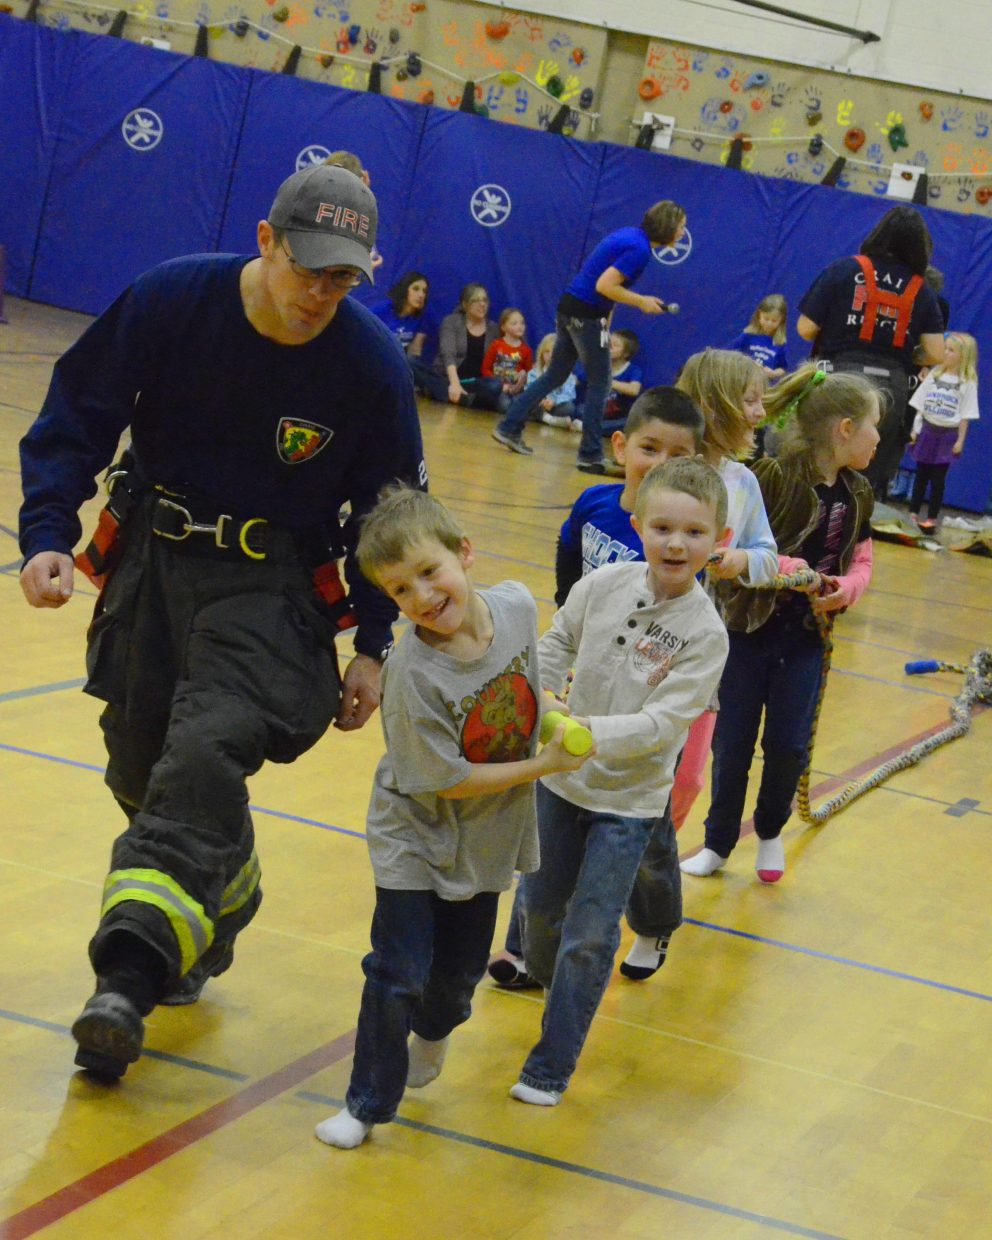 Craig Fire/Rescue's Ryan Hampton instructs Sandrock Elementary School students on how to run a fire hose during the firefighter obstacle course Friday afternoon in the school's gym. A lengthy rope replaced an actual hose in the drill, which more than 120 Sandrock kids got to do after helping raise $8,500 in the school's fall fundraiser.